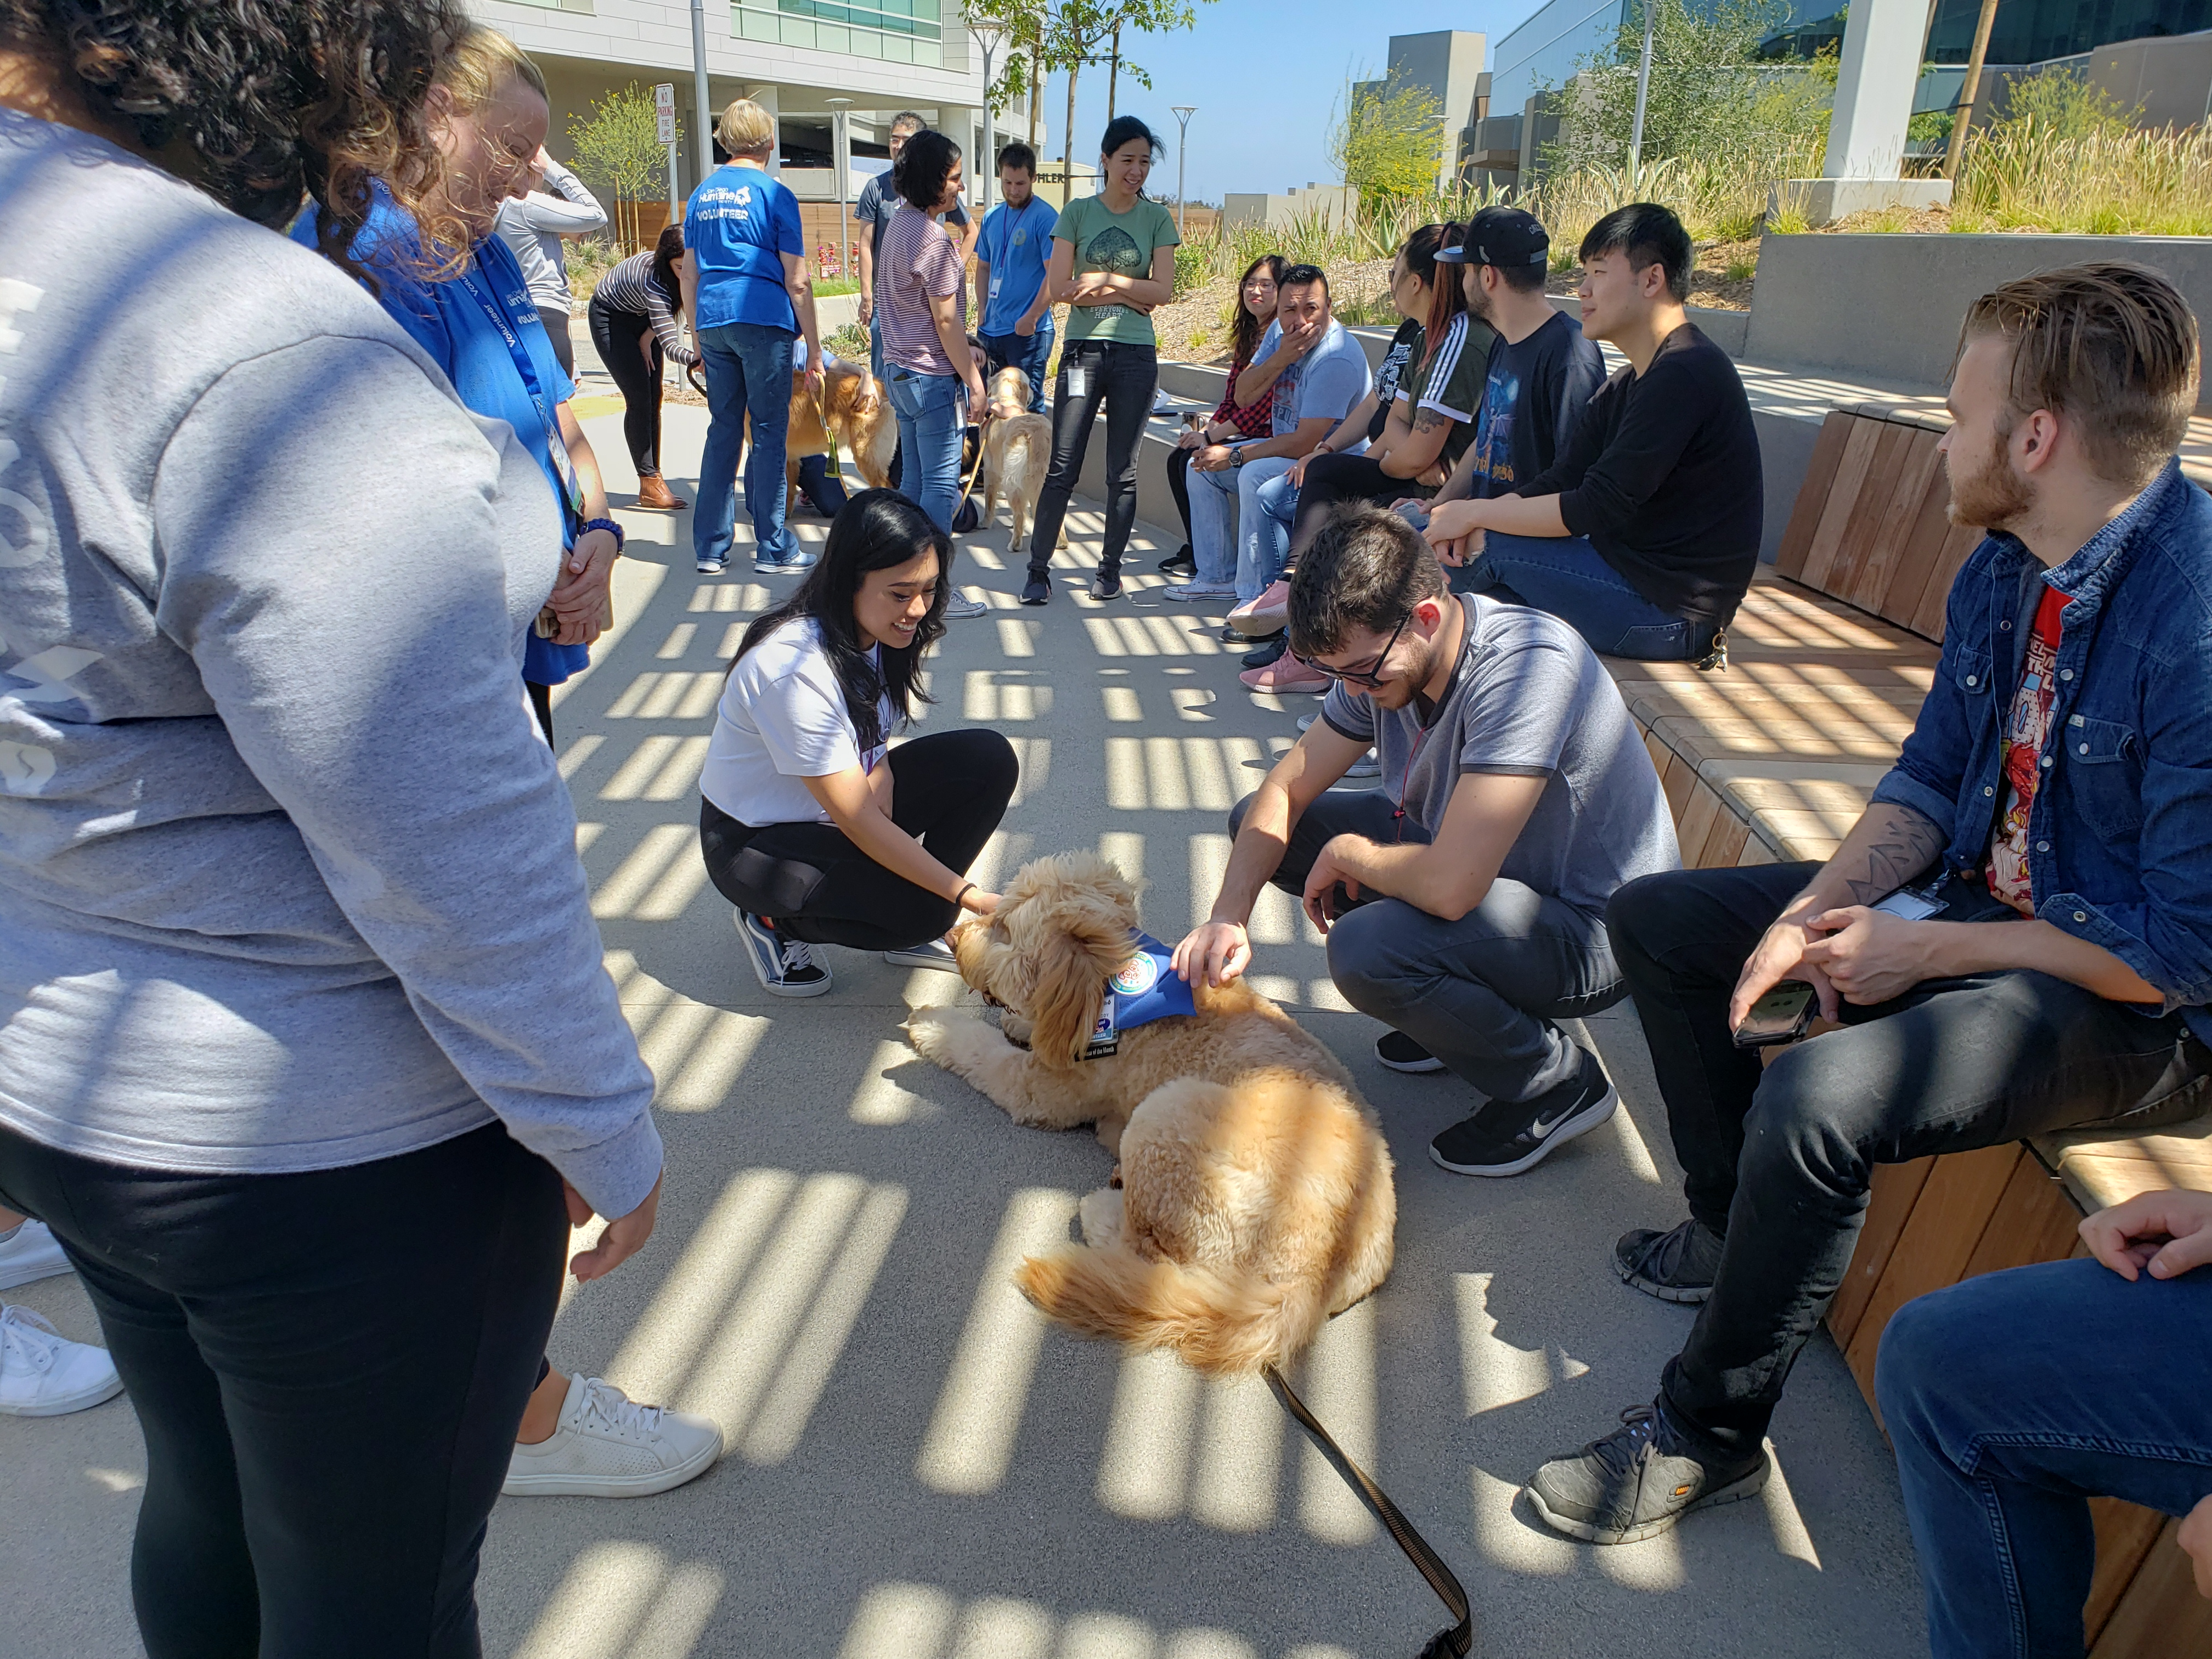 Pet Therapy day brought to us by the San Diego Humane Society volunteers